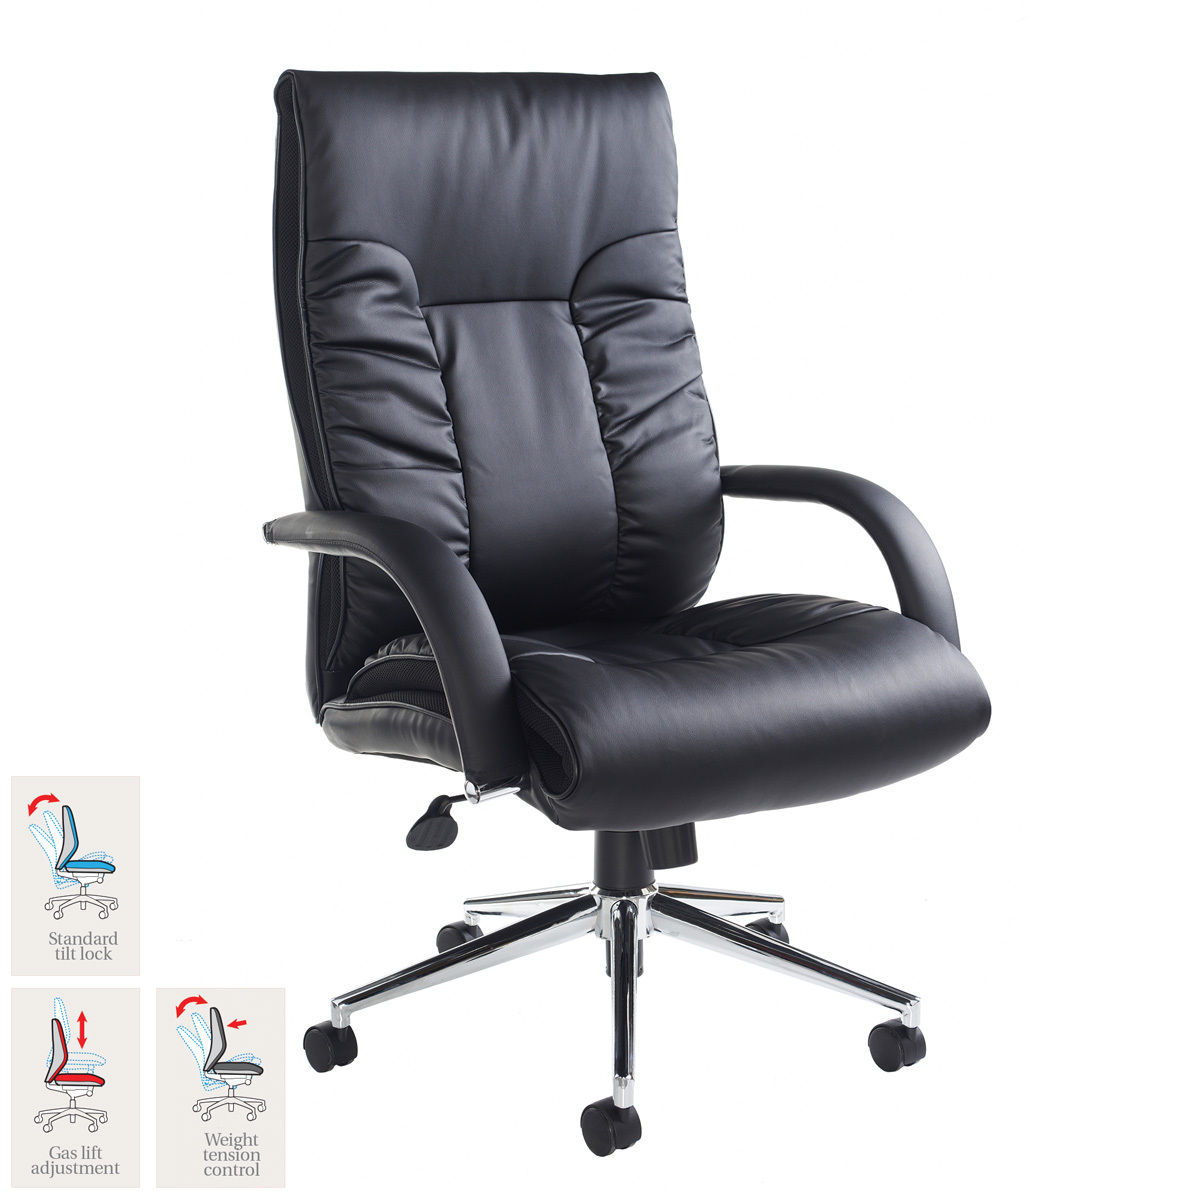 Costco Office Chairs In Store Derby Leather Faced Executive Chair In Black Costco Uk